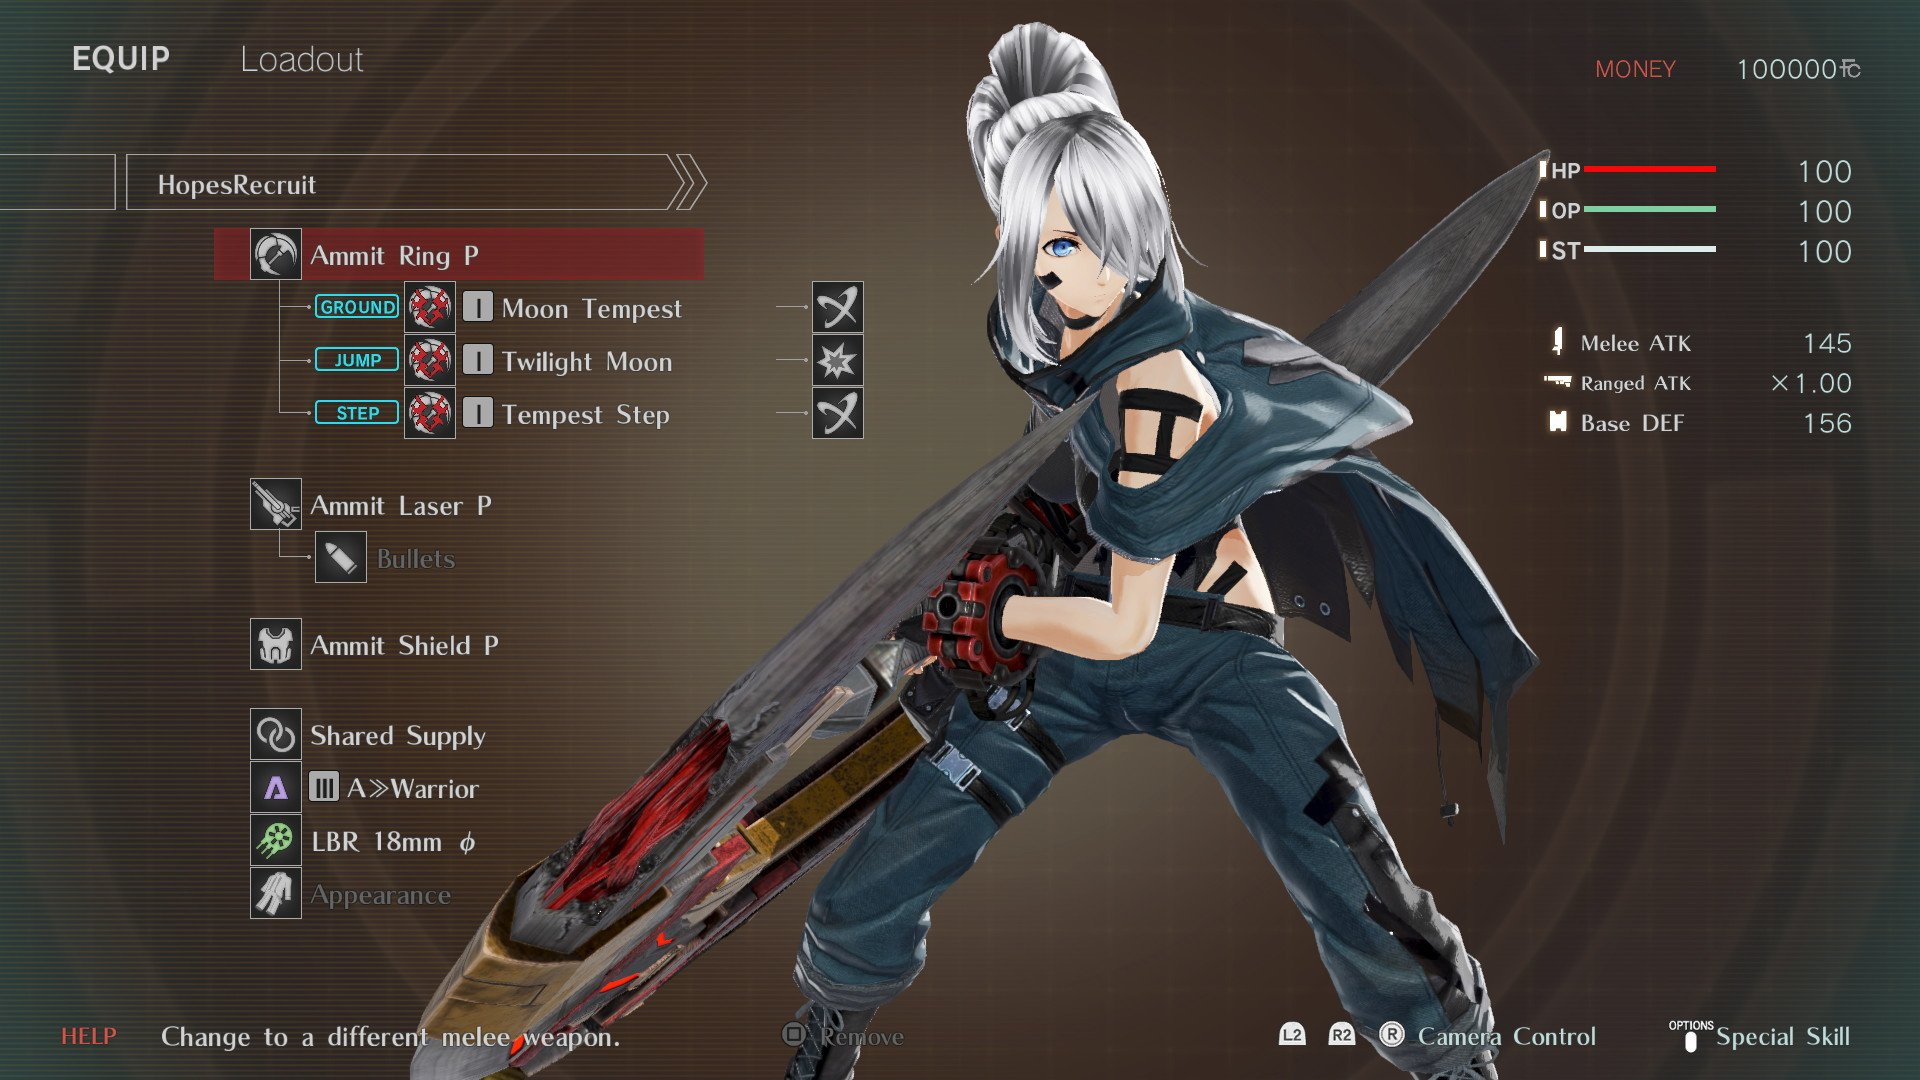 God Eater 3 inventory management screen